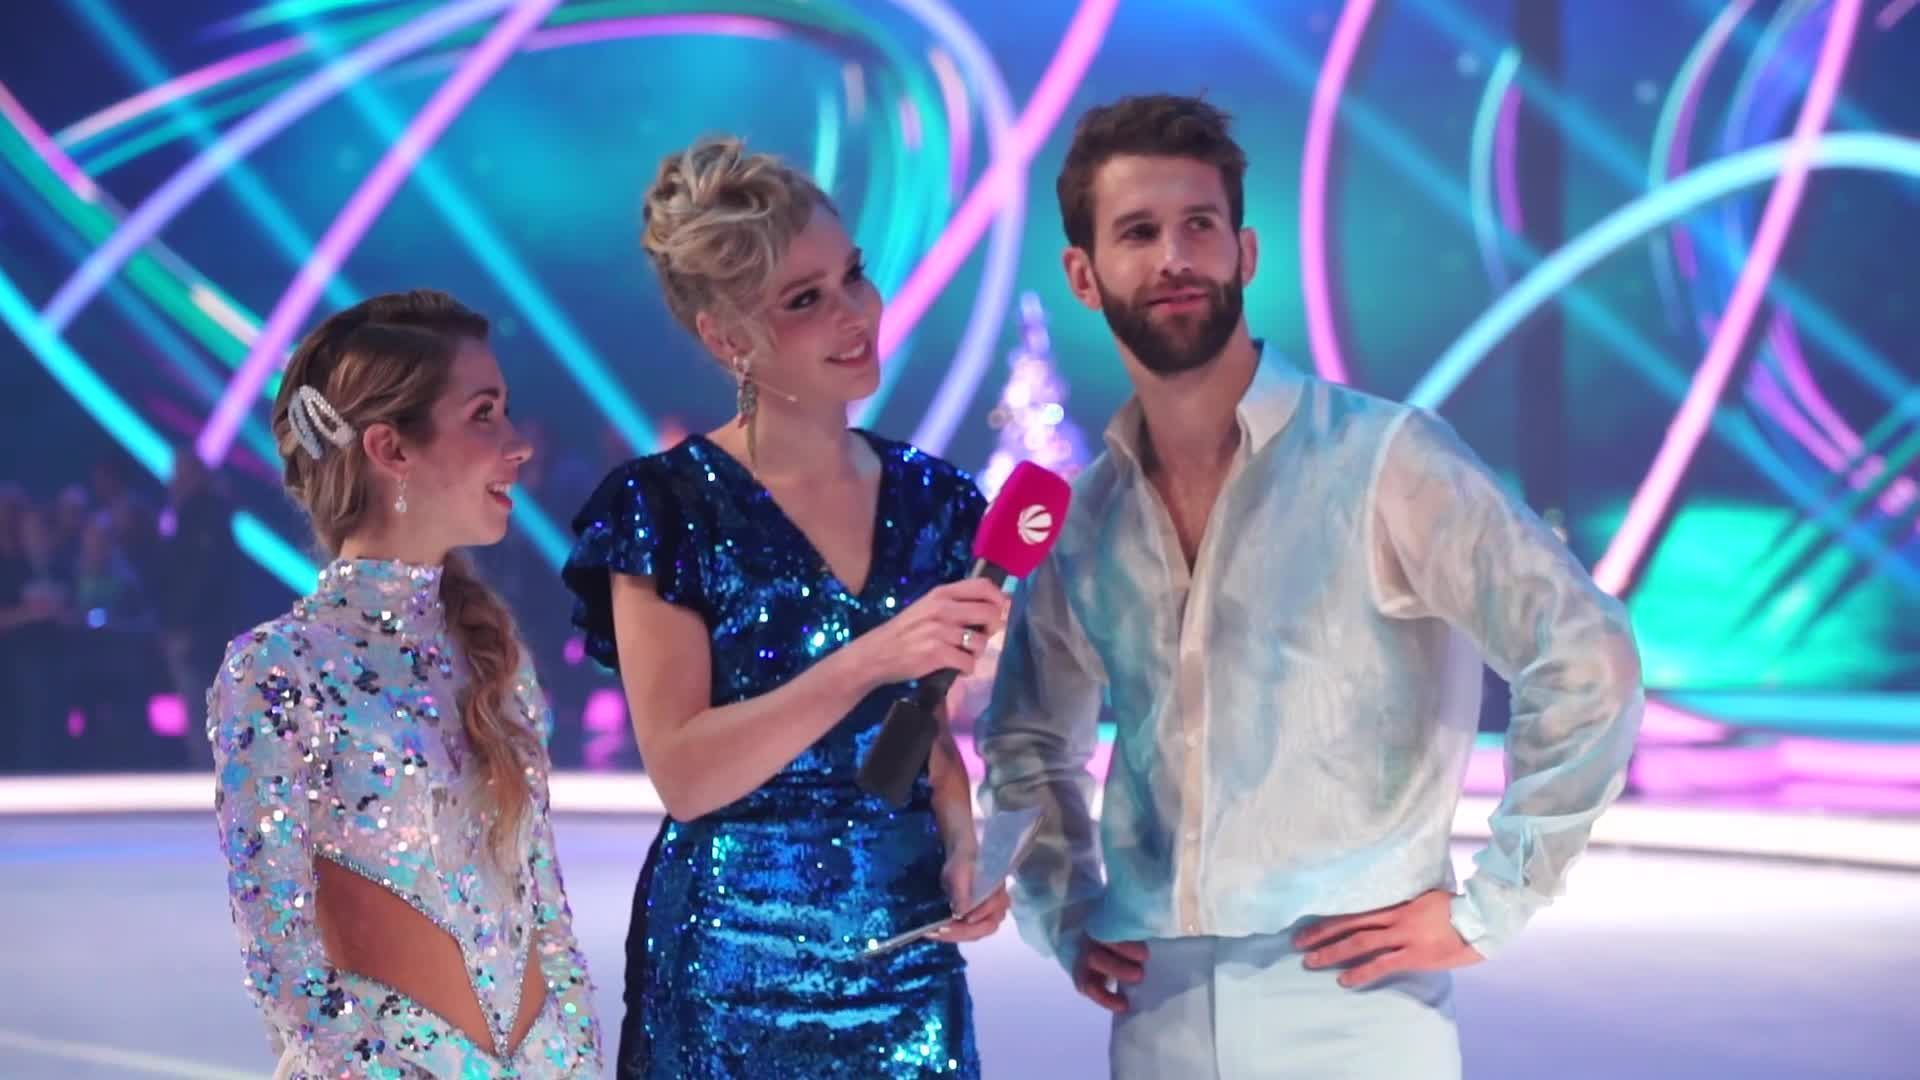 Dancing on Ice - Emotionaler Abschied von Nadine & André